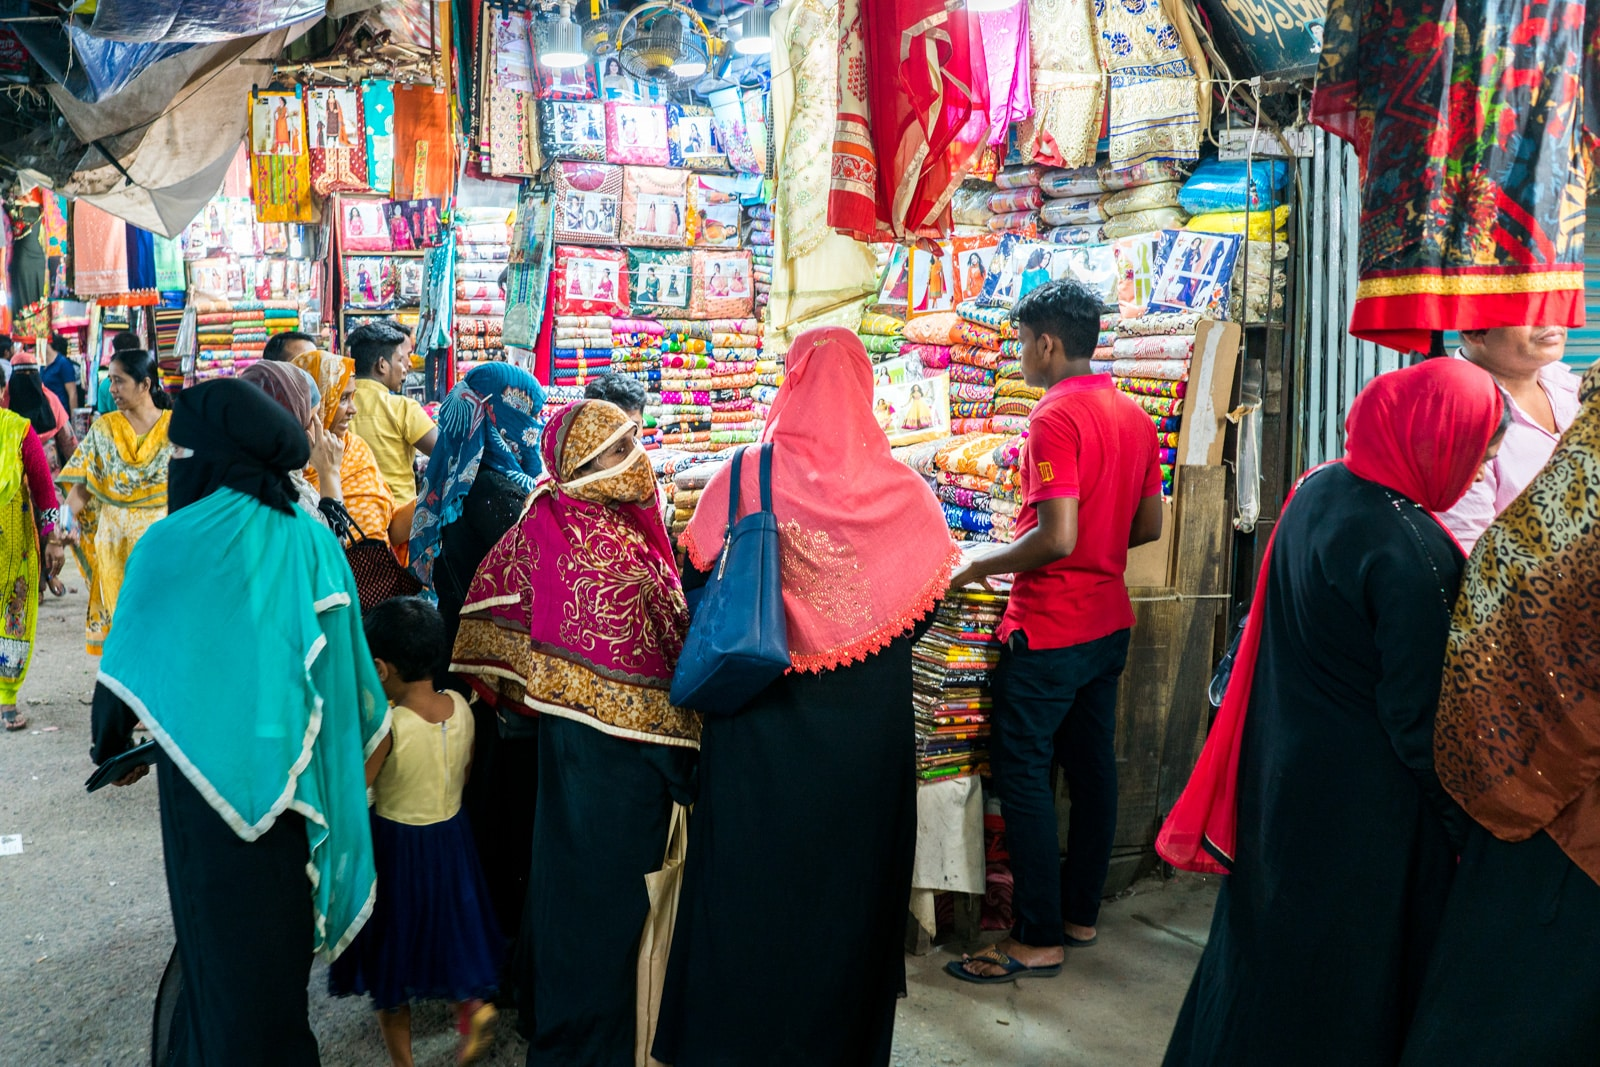 Traveling as a woman in Bangladesh - Women in black abayas with colorful headscarves shopping in the markets of Old Dhaka - Lost With Purpose travel blog